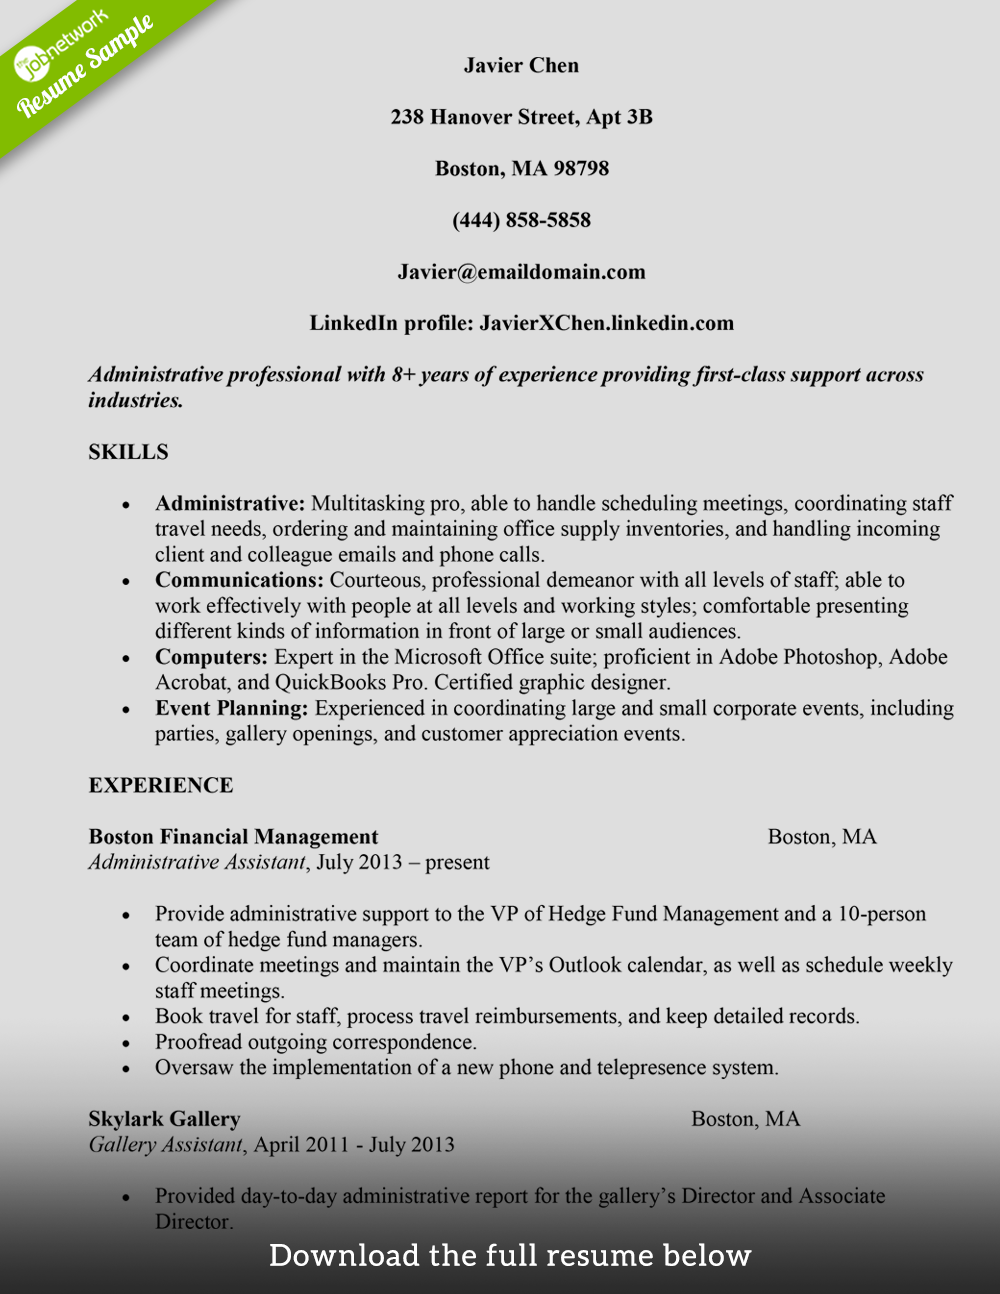 administrative assistant resume javier chen - Administrative Support Resume Samples